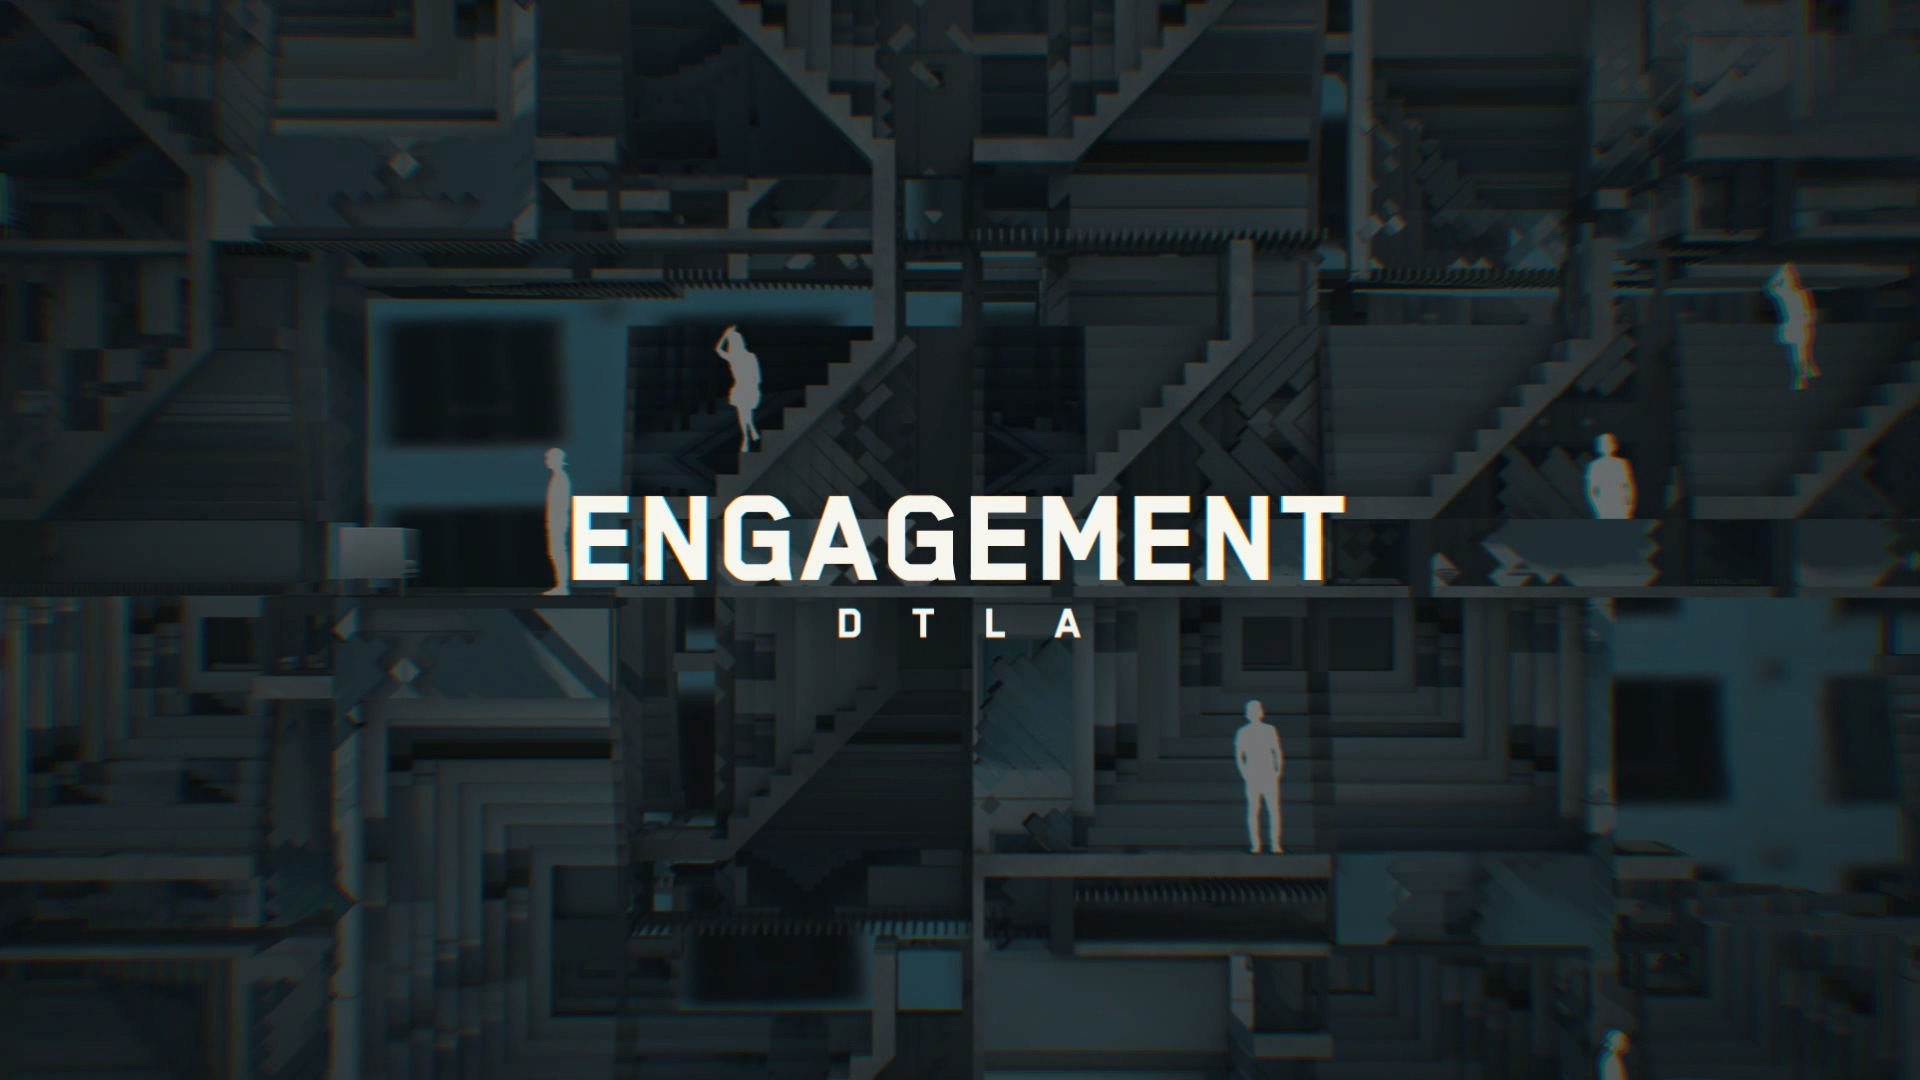 ENGAGEMENT DTLA.mp4_20181221_232202.972.jpg